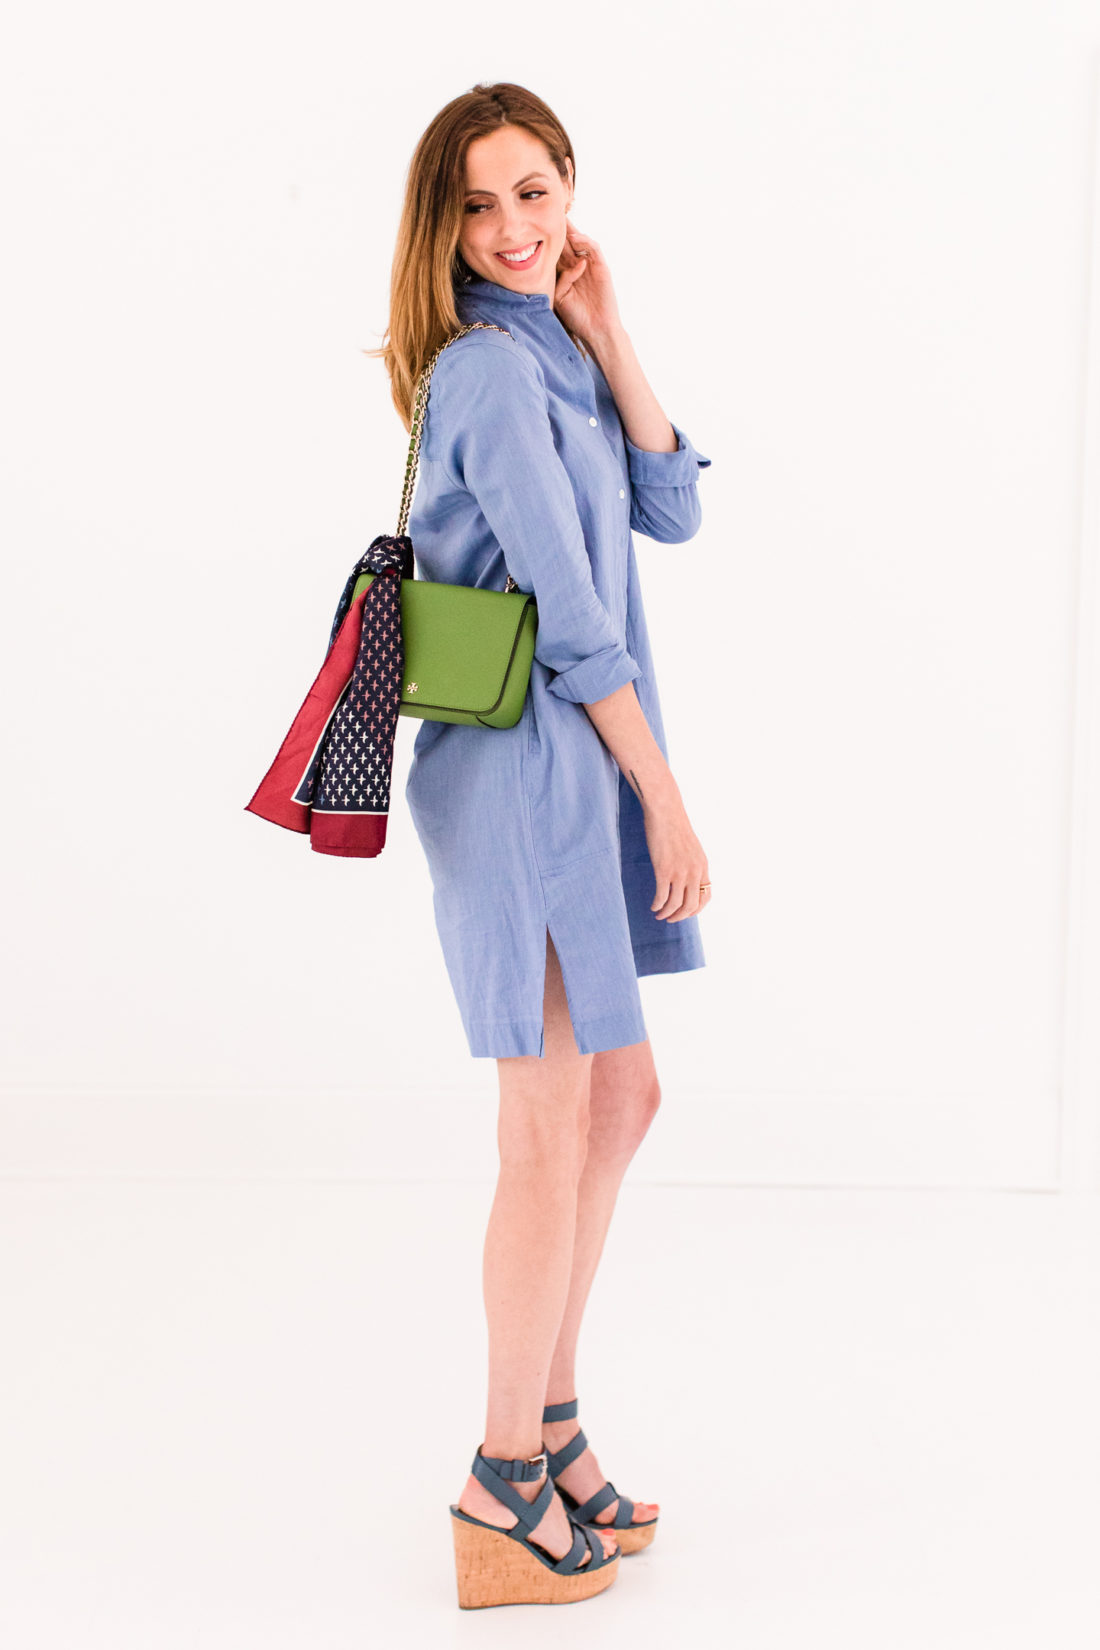 Eva Amurri Martino wears a light blue shirt dress and a green tory burch bag with a printed scarf tied around it